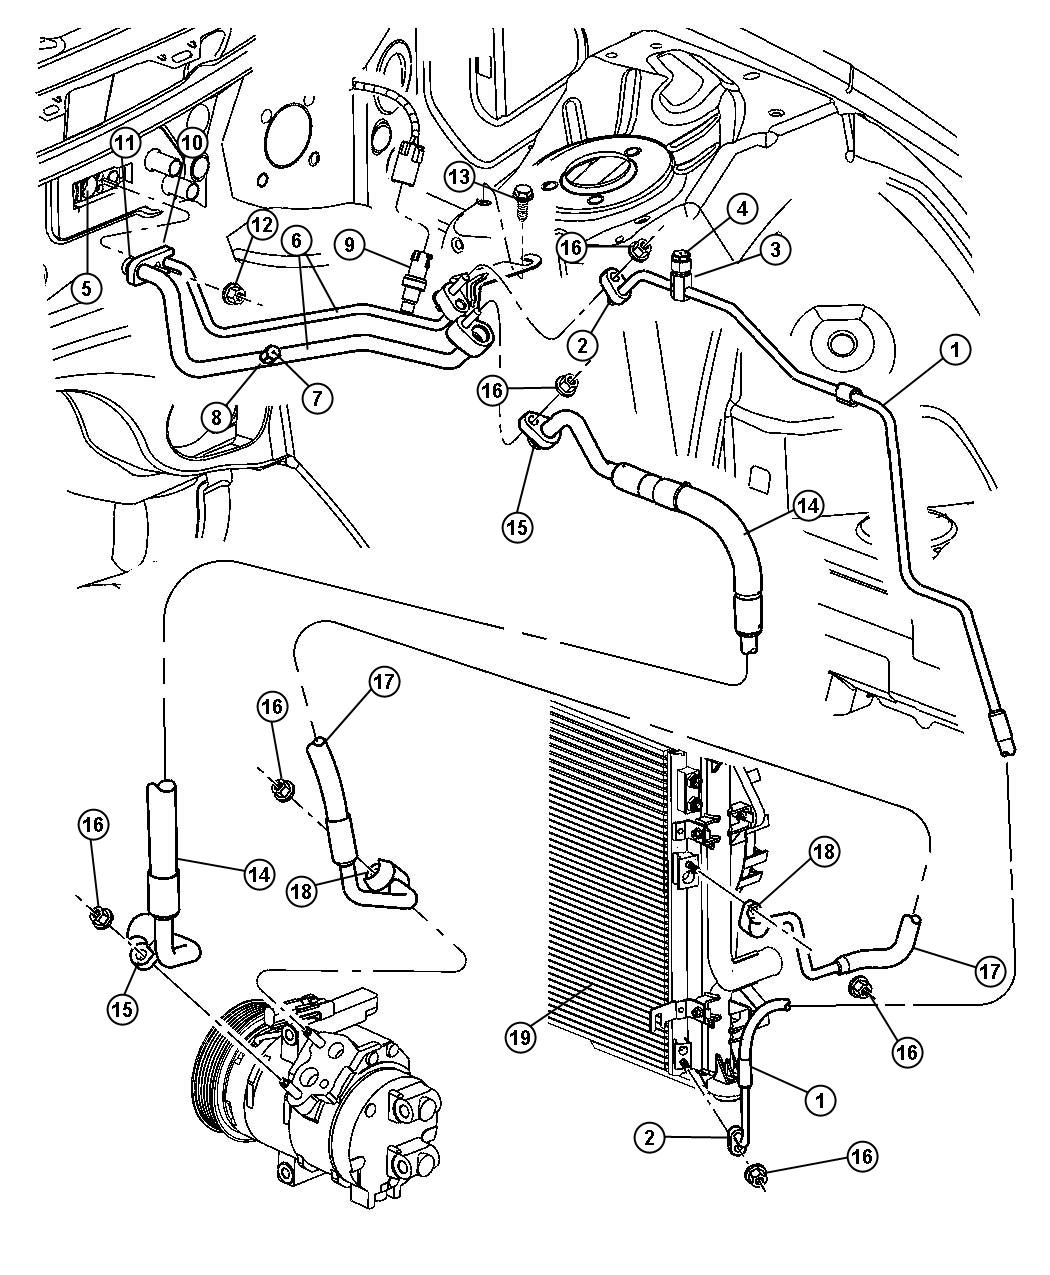 chrysler 300 parts diagram  chrysler  auto wiring diagram